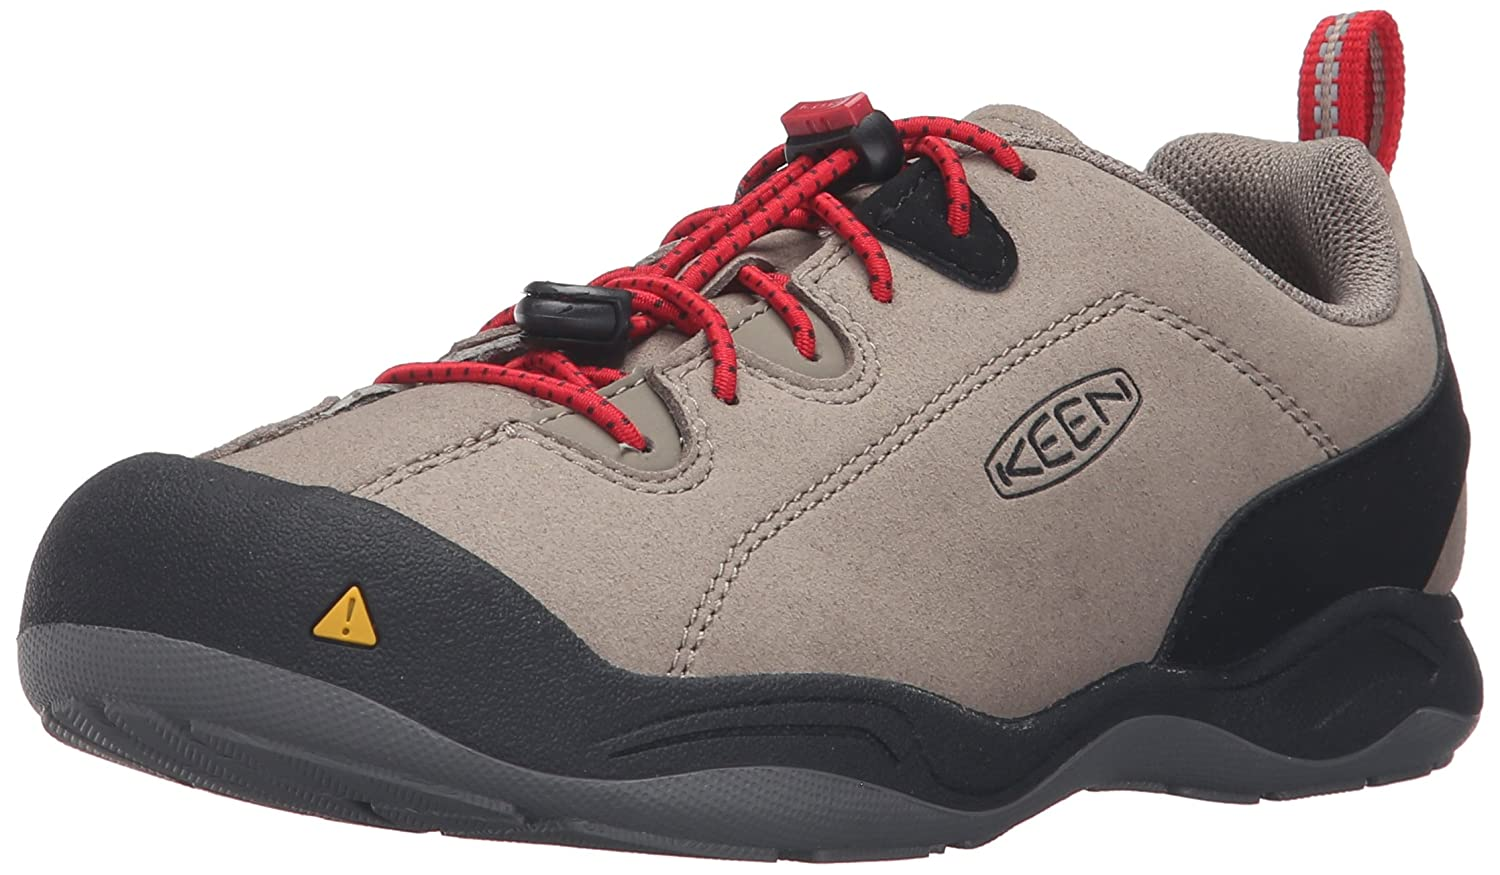 KEEN Jasper Shoe (Little Kid/Big Kid) B01920TM5C 3 Youth US Big Kid|Brindle/Tango Red